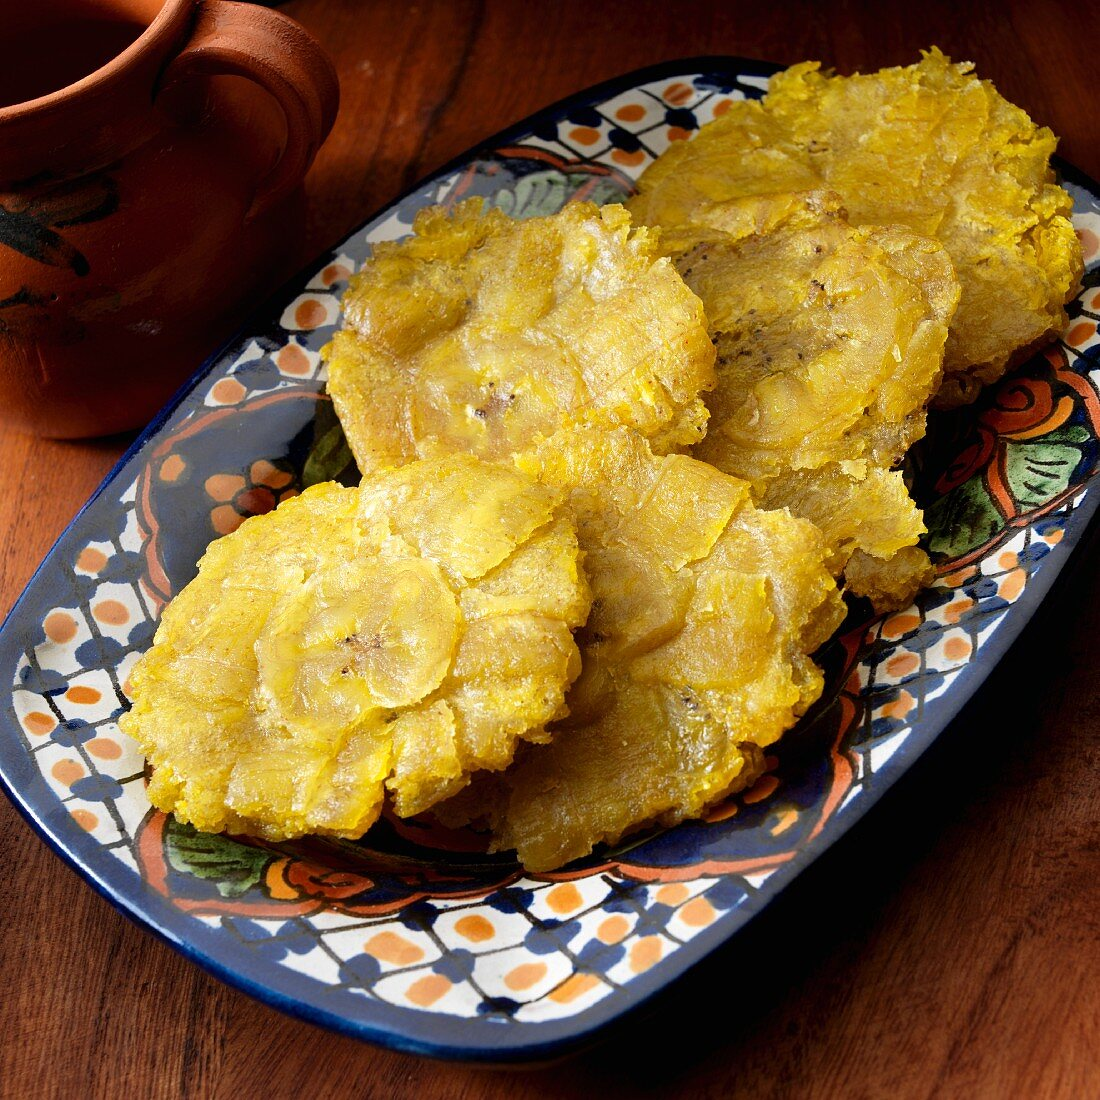 Tostones, twice fried plantains